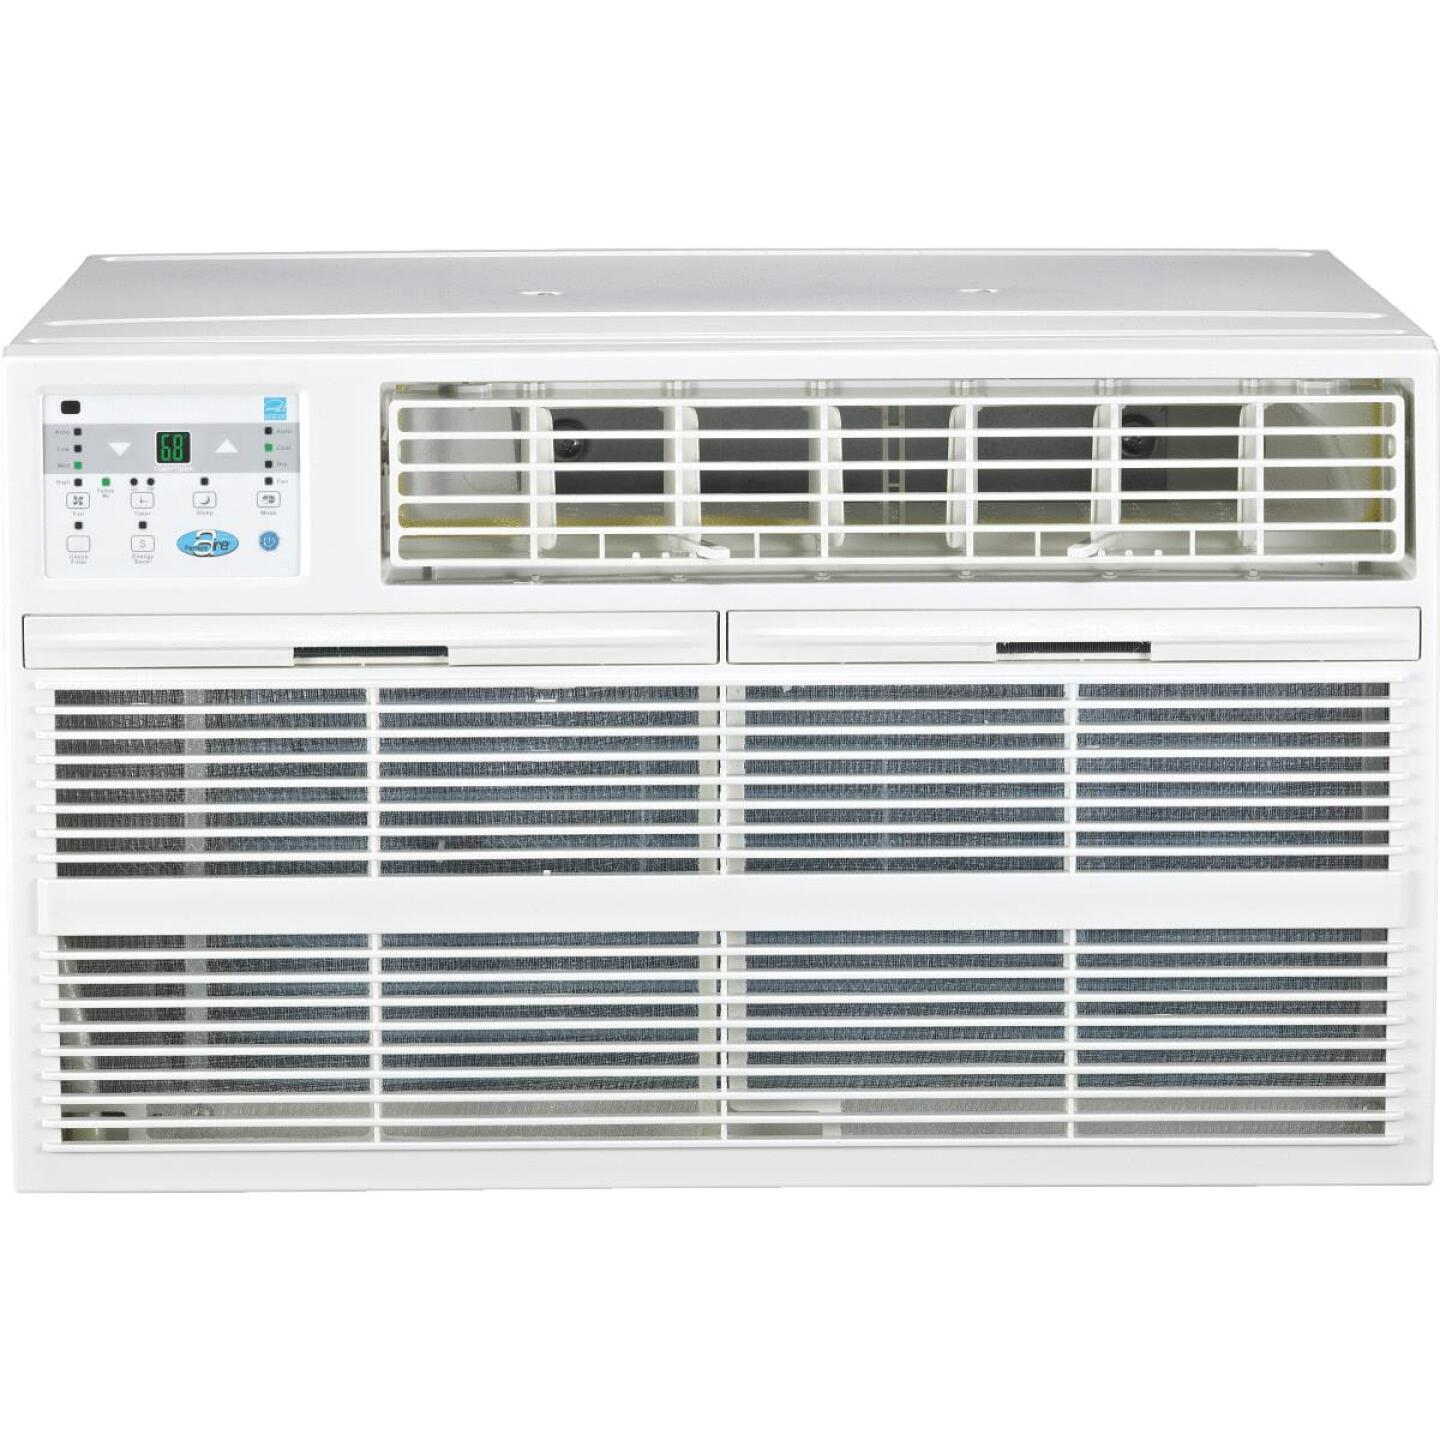 Perfect Aire 10,000 BTU 450 Sq. Ft. Thru-The-Wall Air Conditioner Image 1